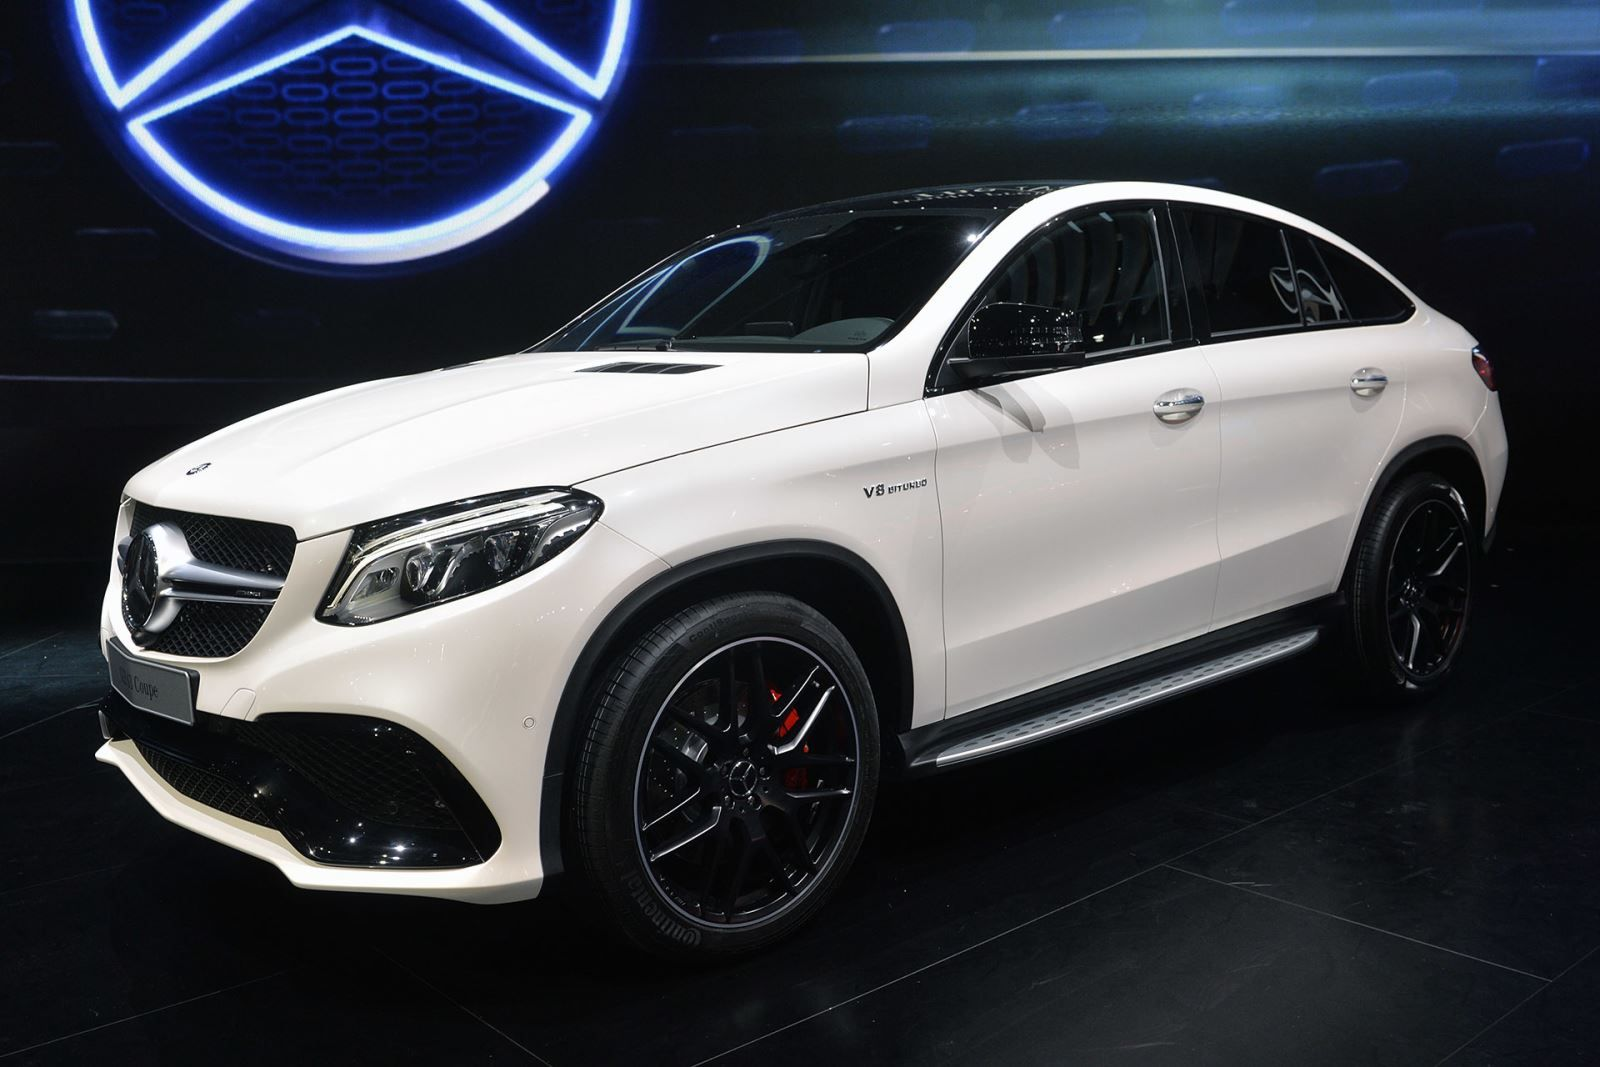 Mercedes Benz Gle Coupe 450 Amg And Gle63 With Images Mercedes Benz Gle Mercedes Benz Gle Coupe Mercedes Benz Suv